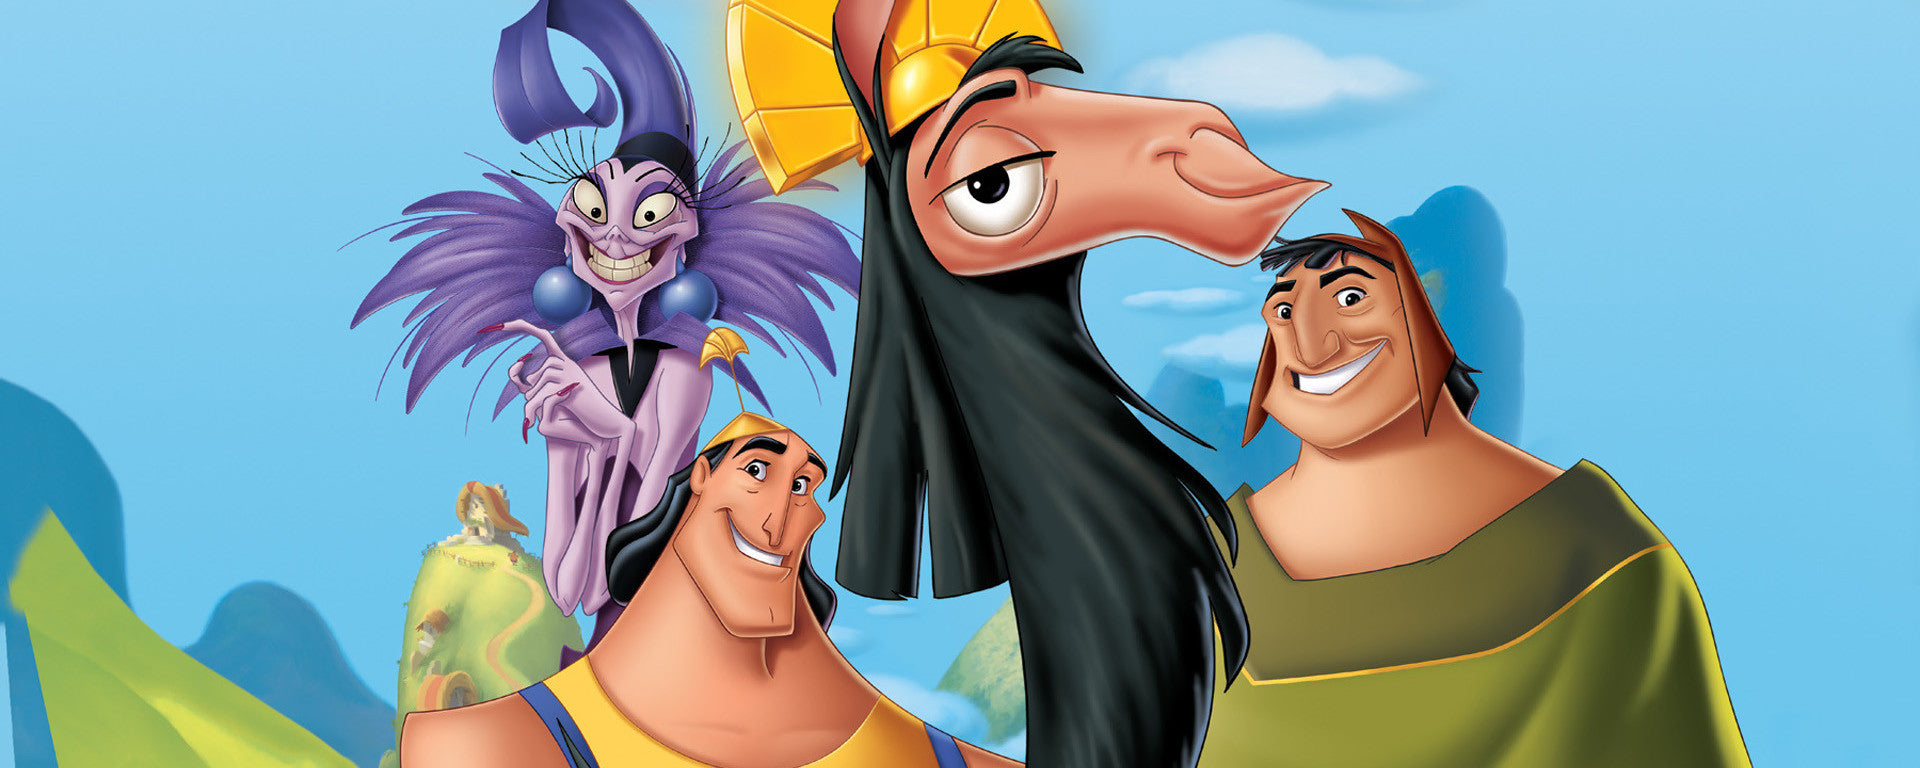 Christian Memes + The Emperor's New Groove